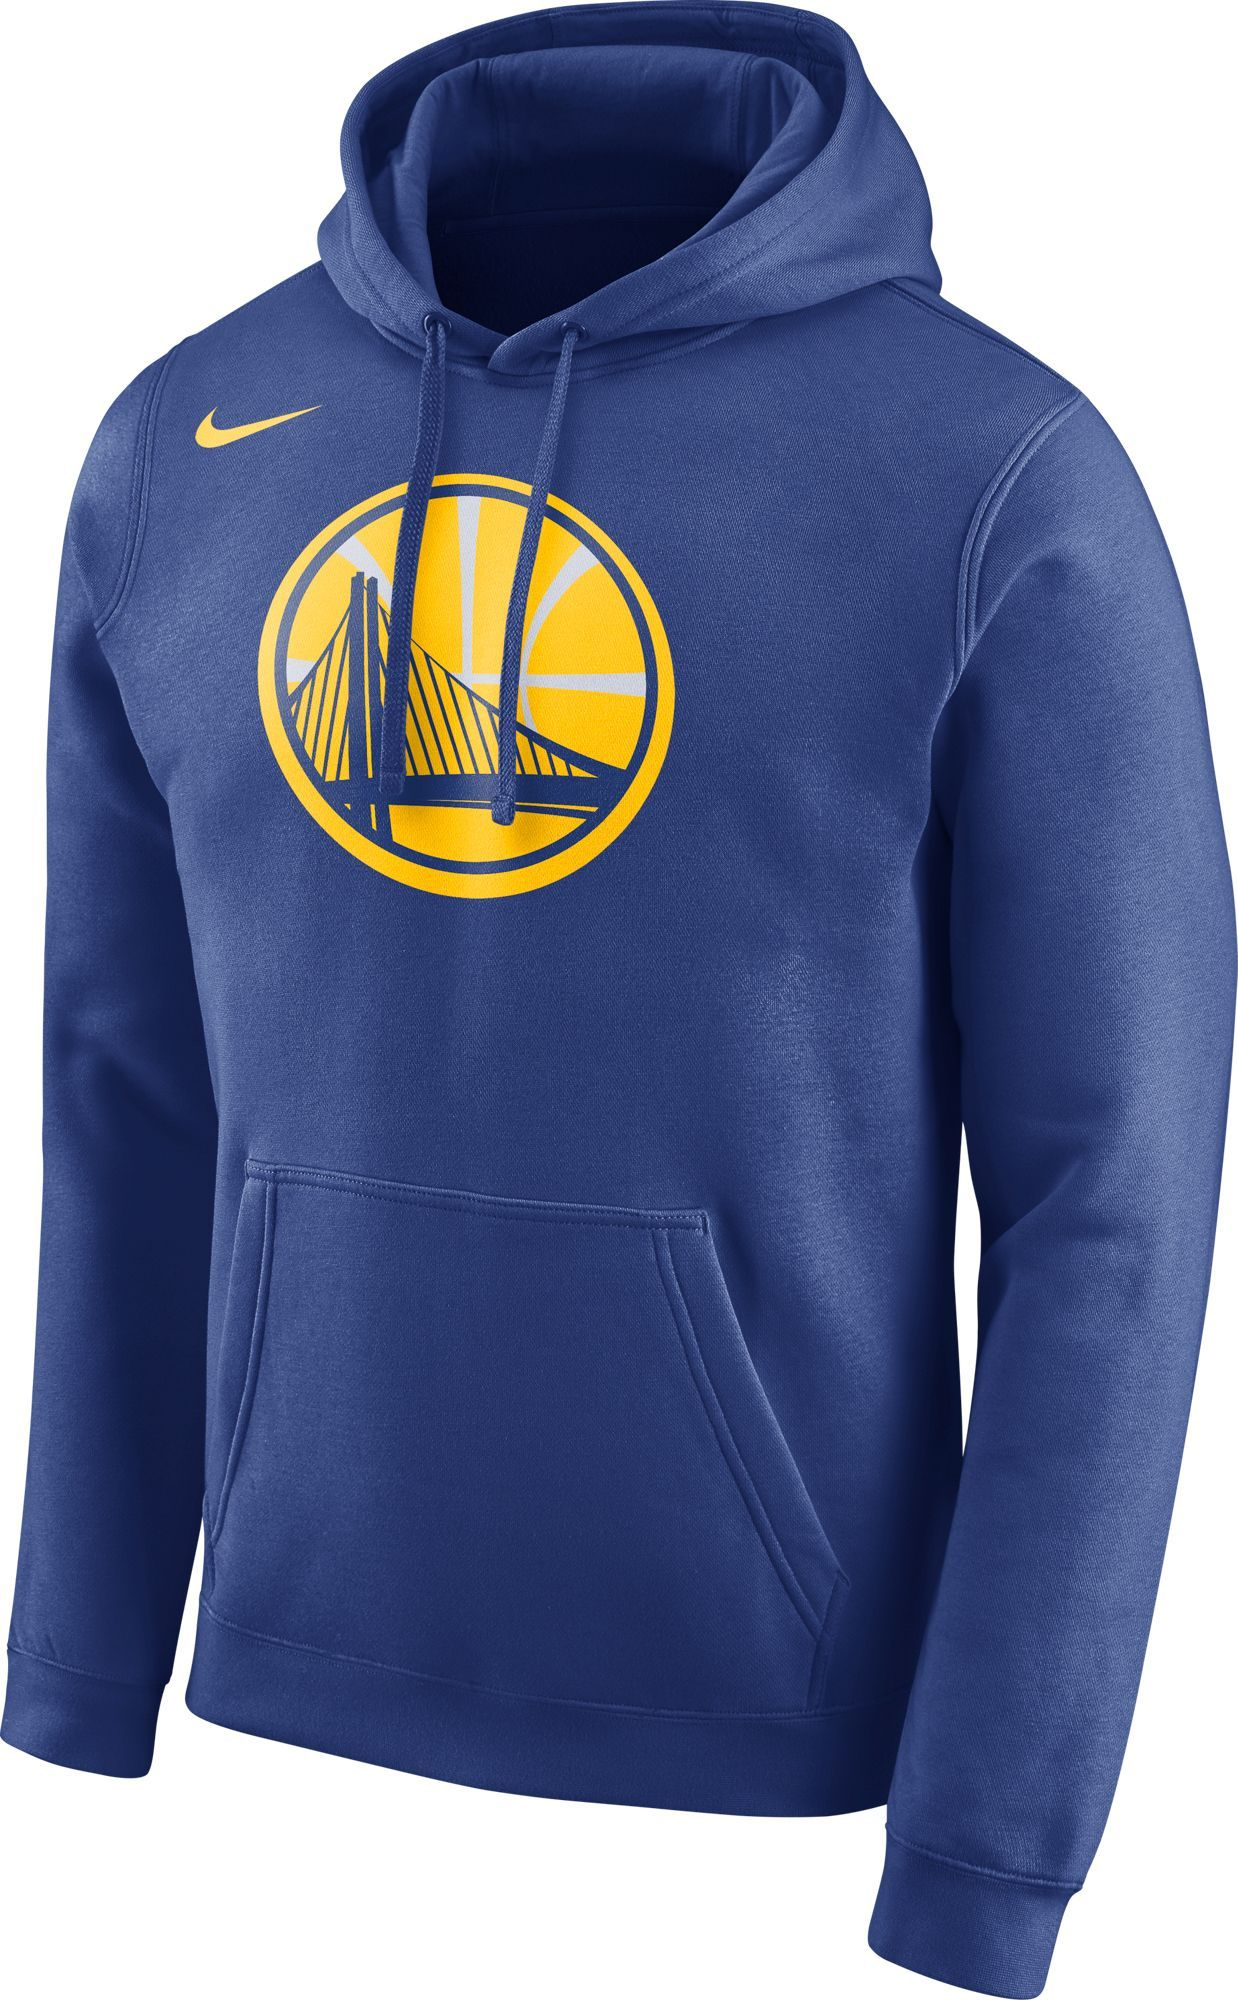 0025fc14e Nike Men's Golden State Warriors Club Royal Pullover Hoodie, Size: Medium,  Team